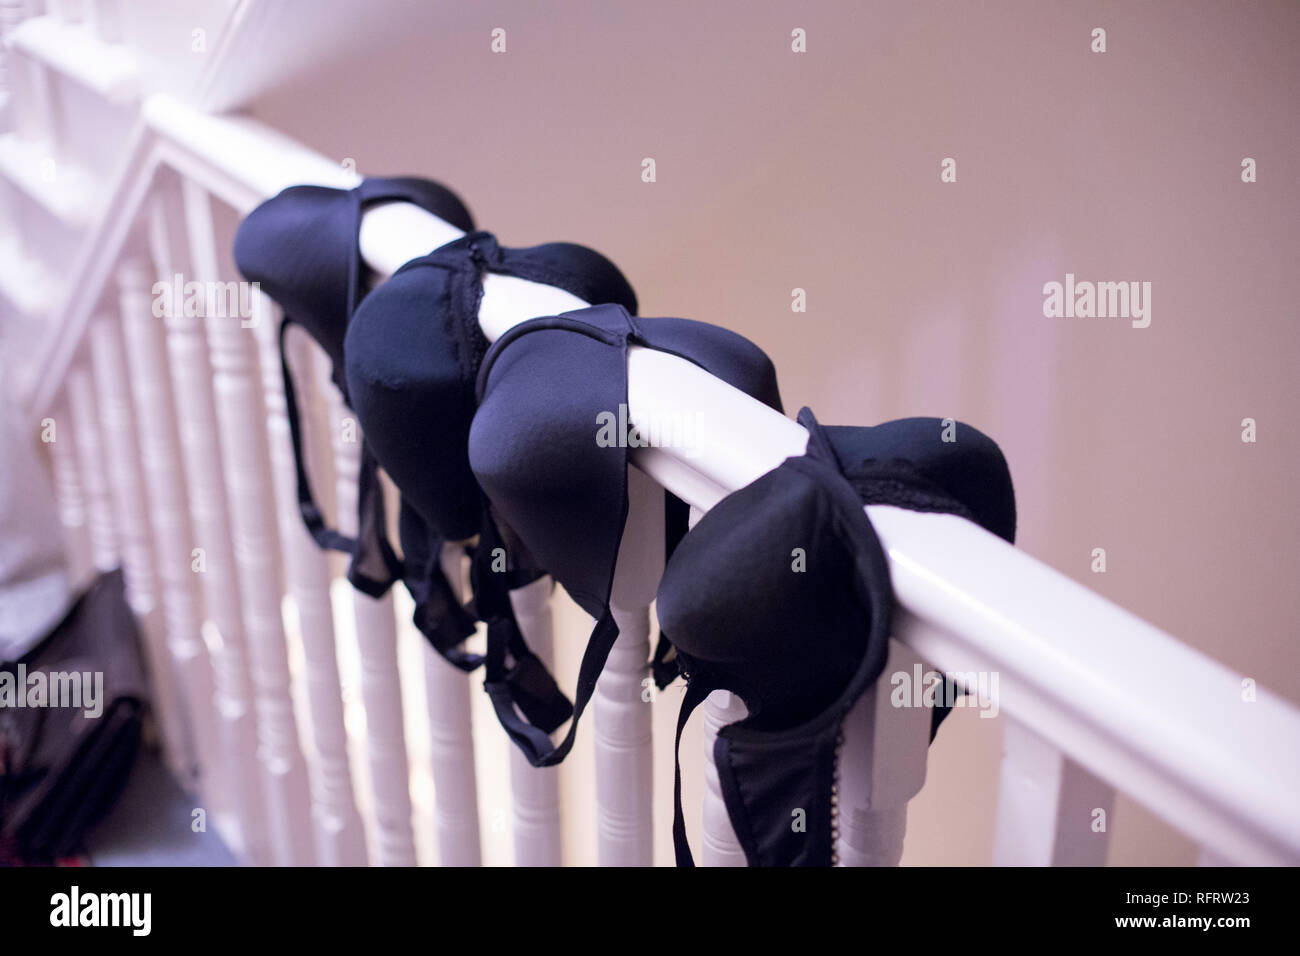 bras drying on the bannisters - Stock Image